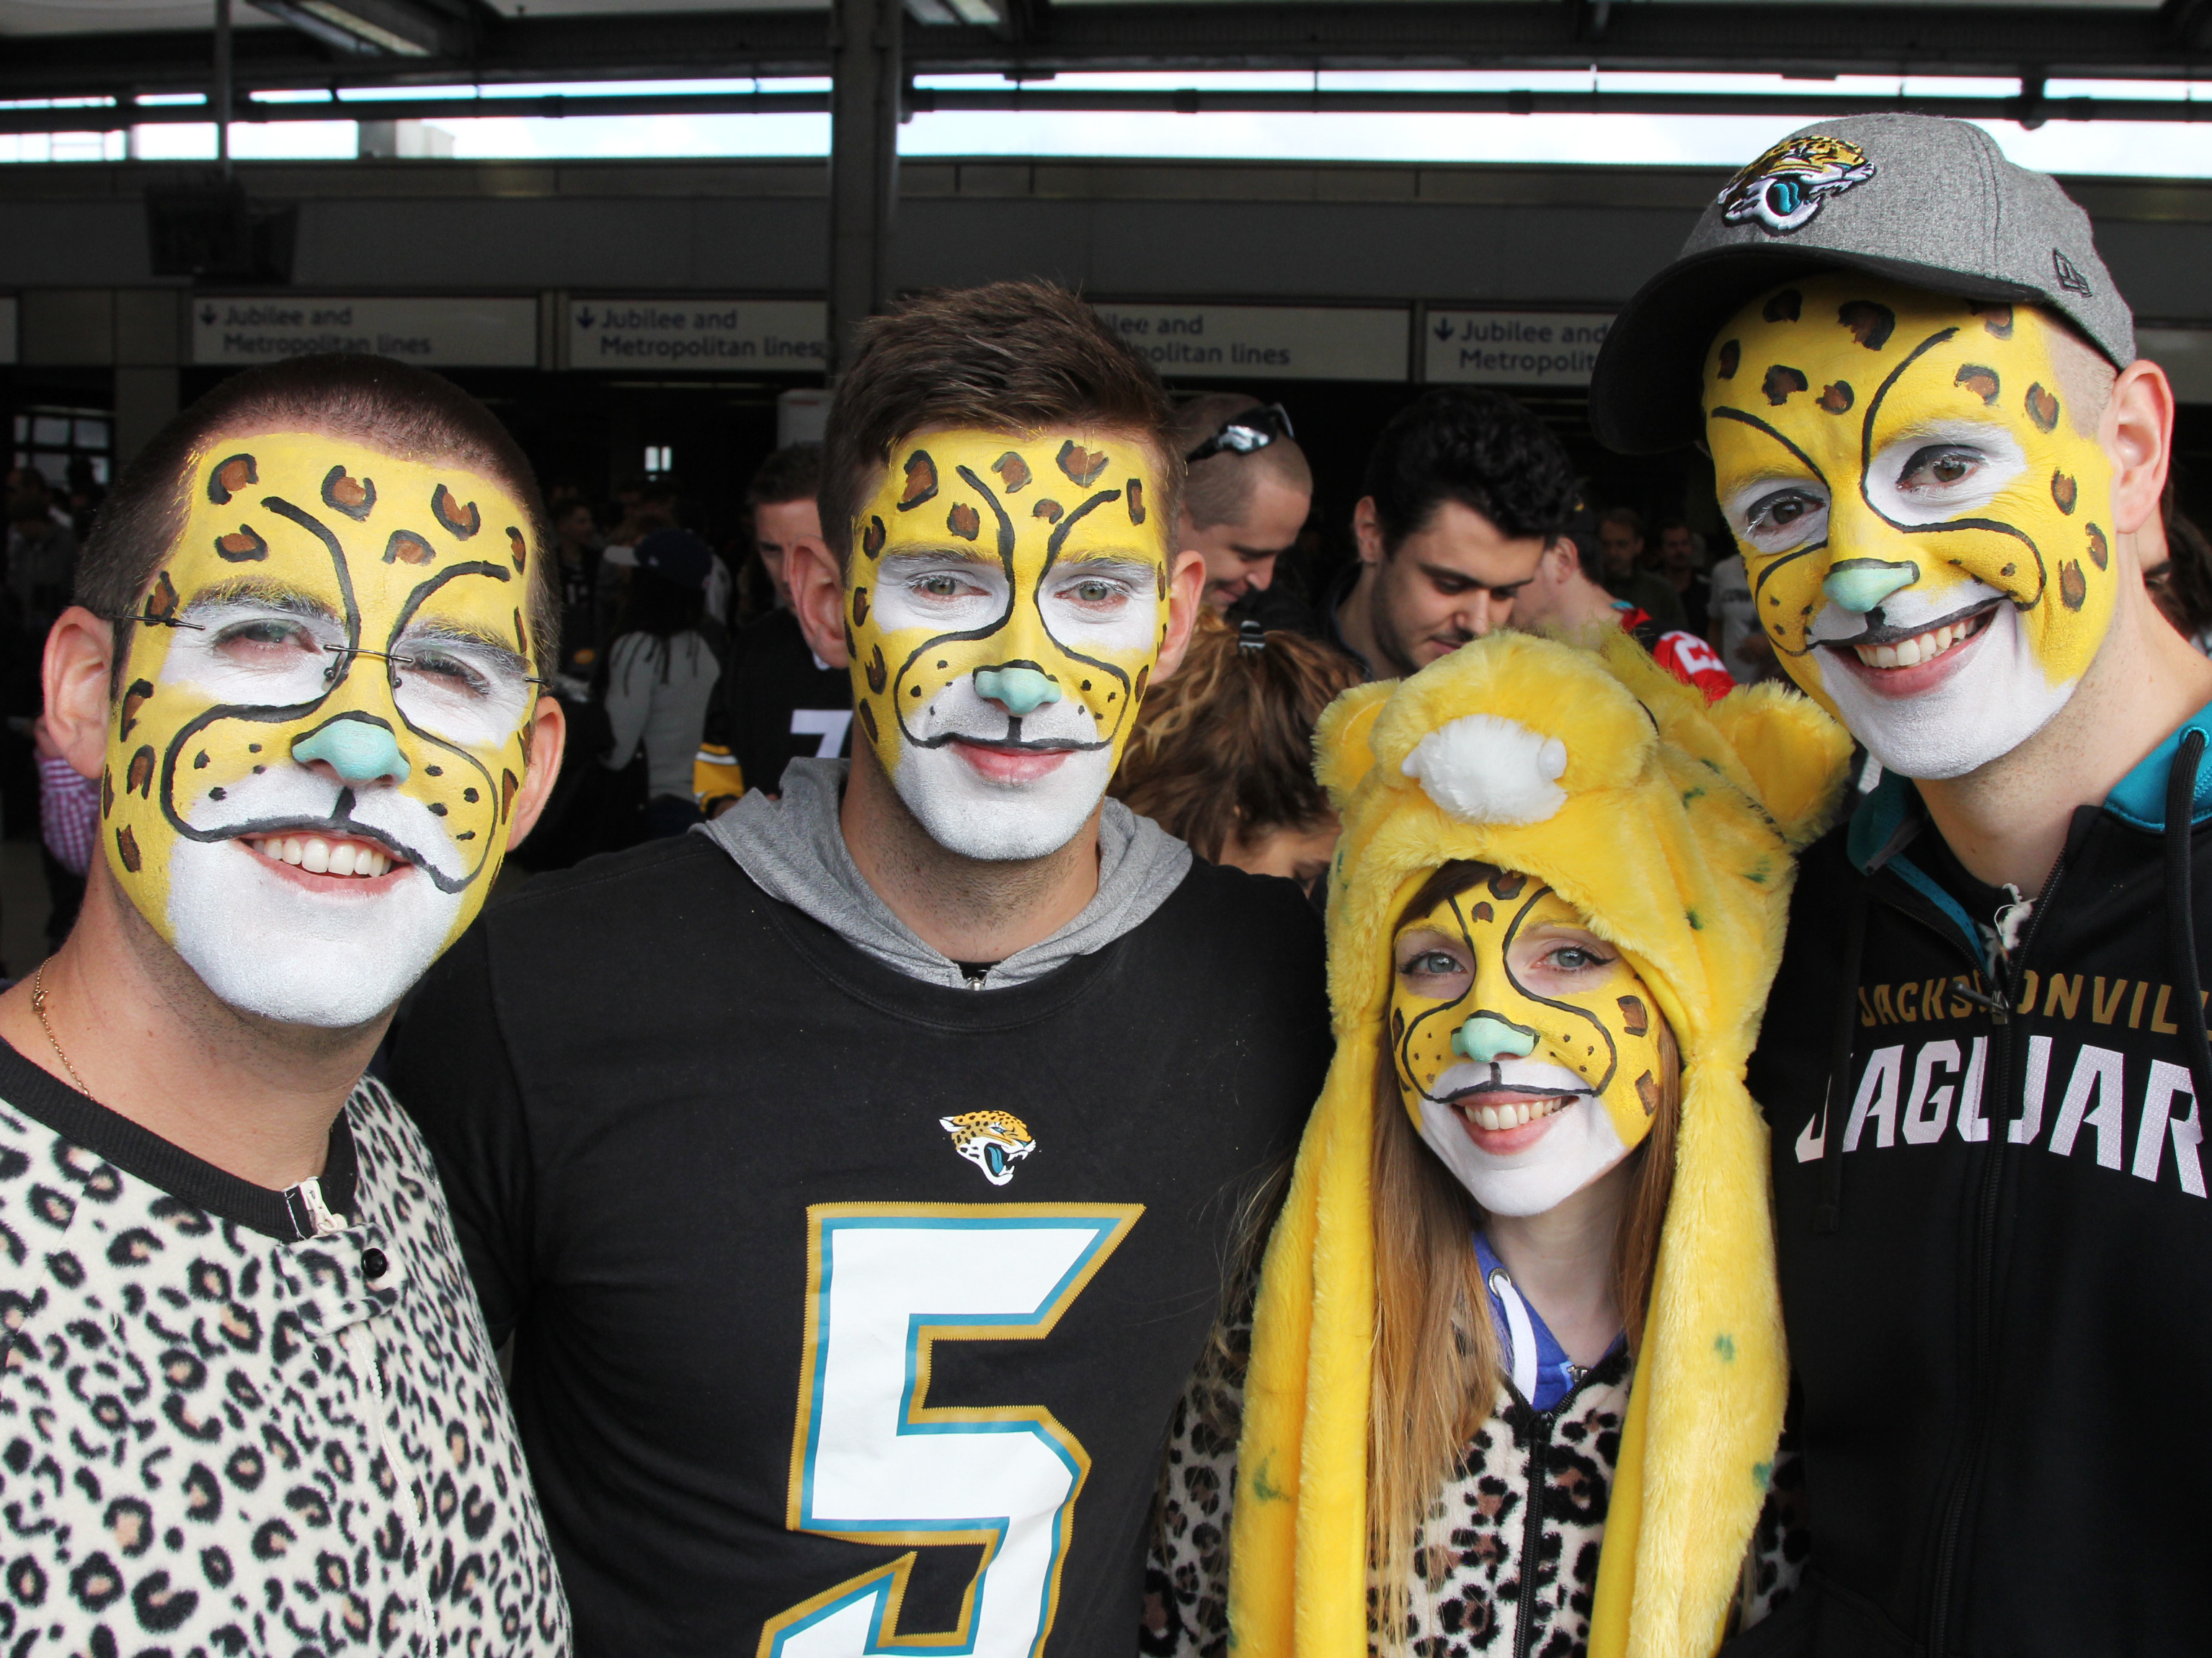 Fans from the English city of Reading don Jacksonville Jaguars onesies to cheer on the team, which has committed to playing games in London through at least 2020. Frank Langfitt/NPR.